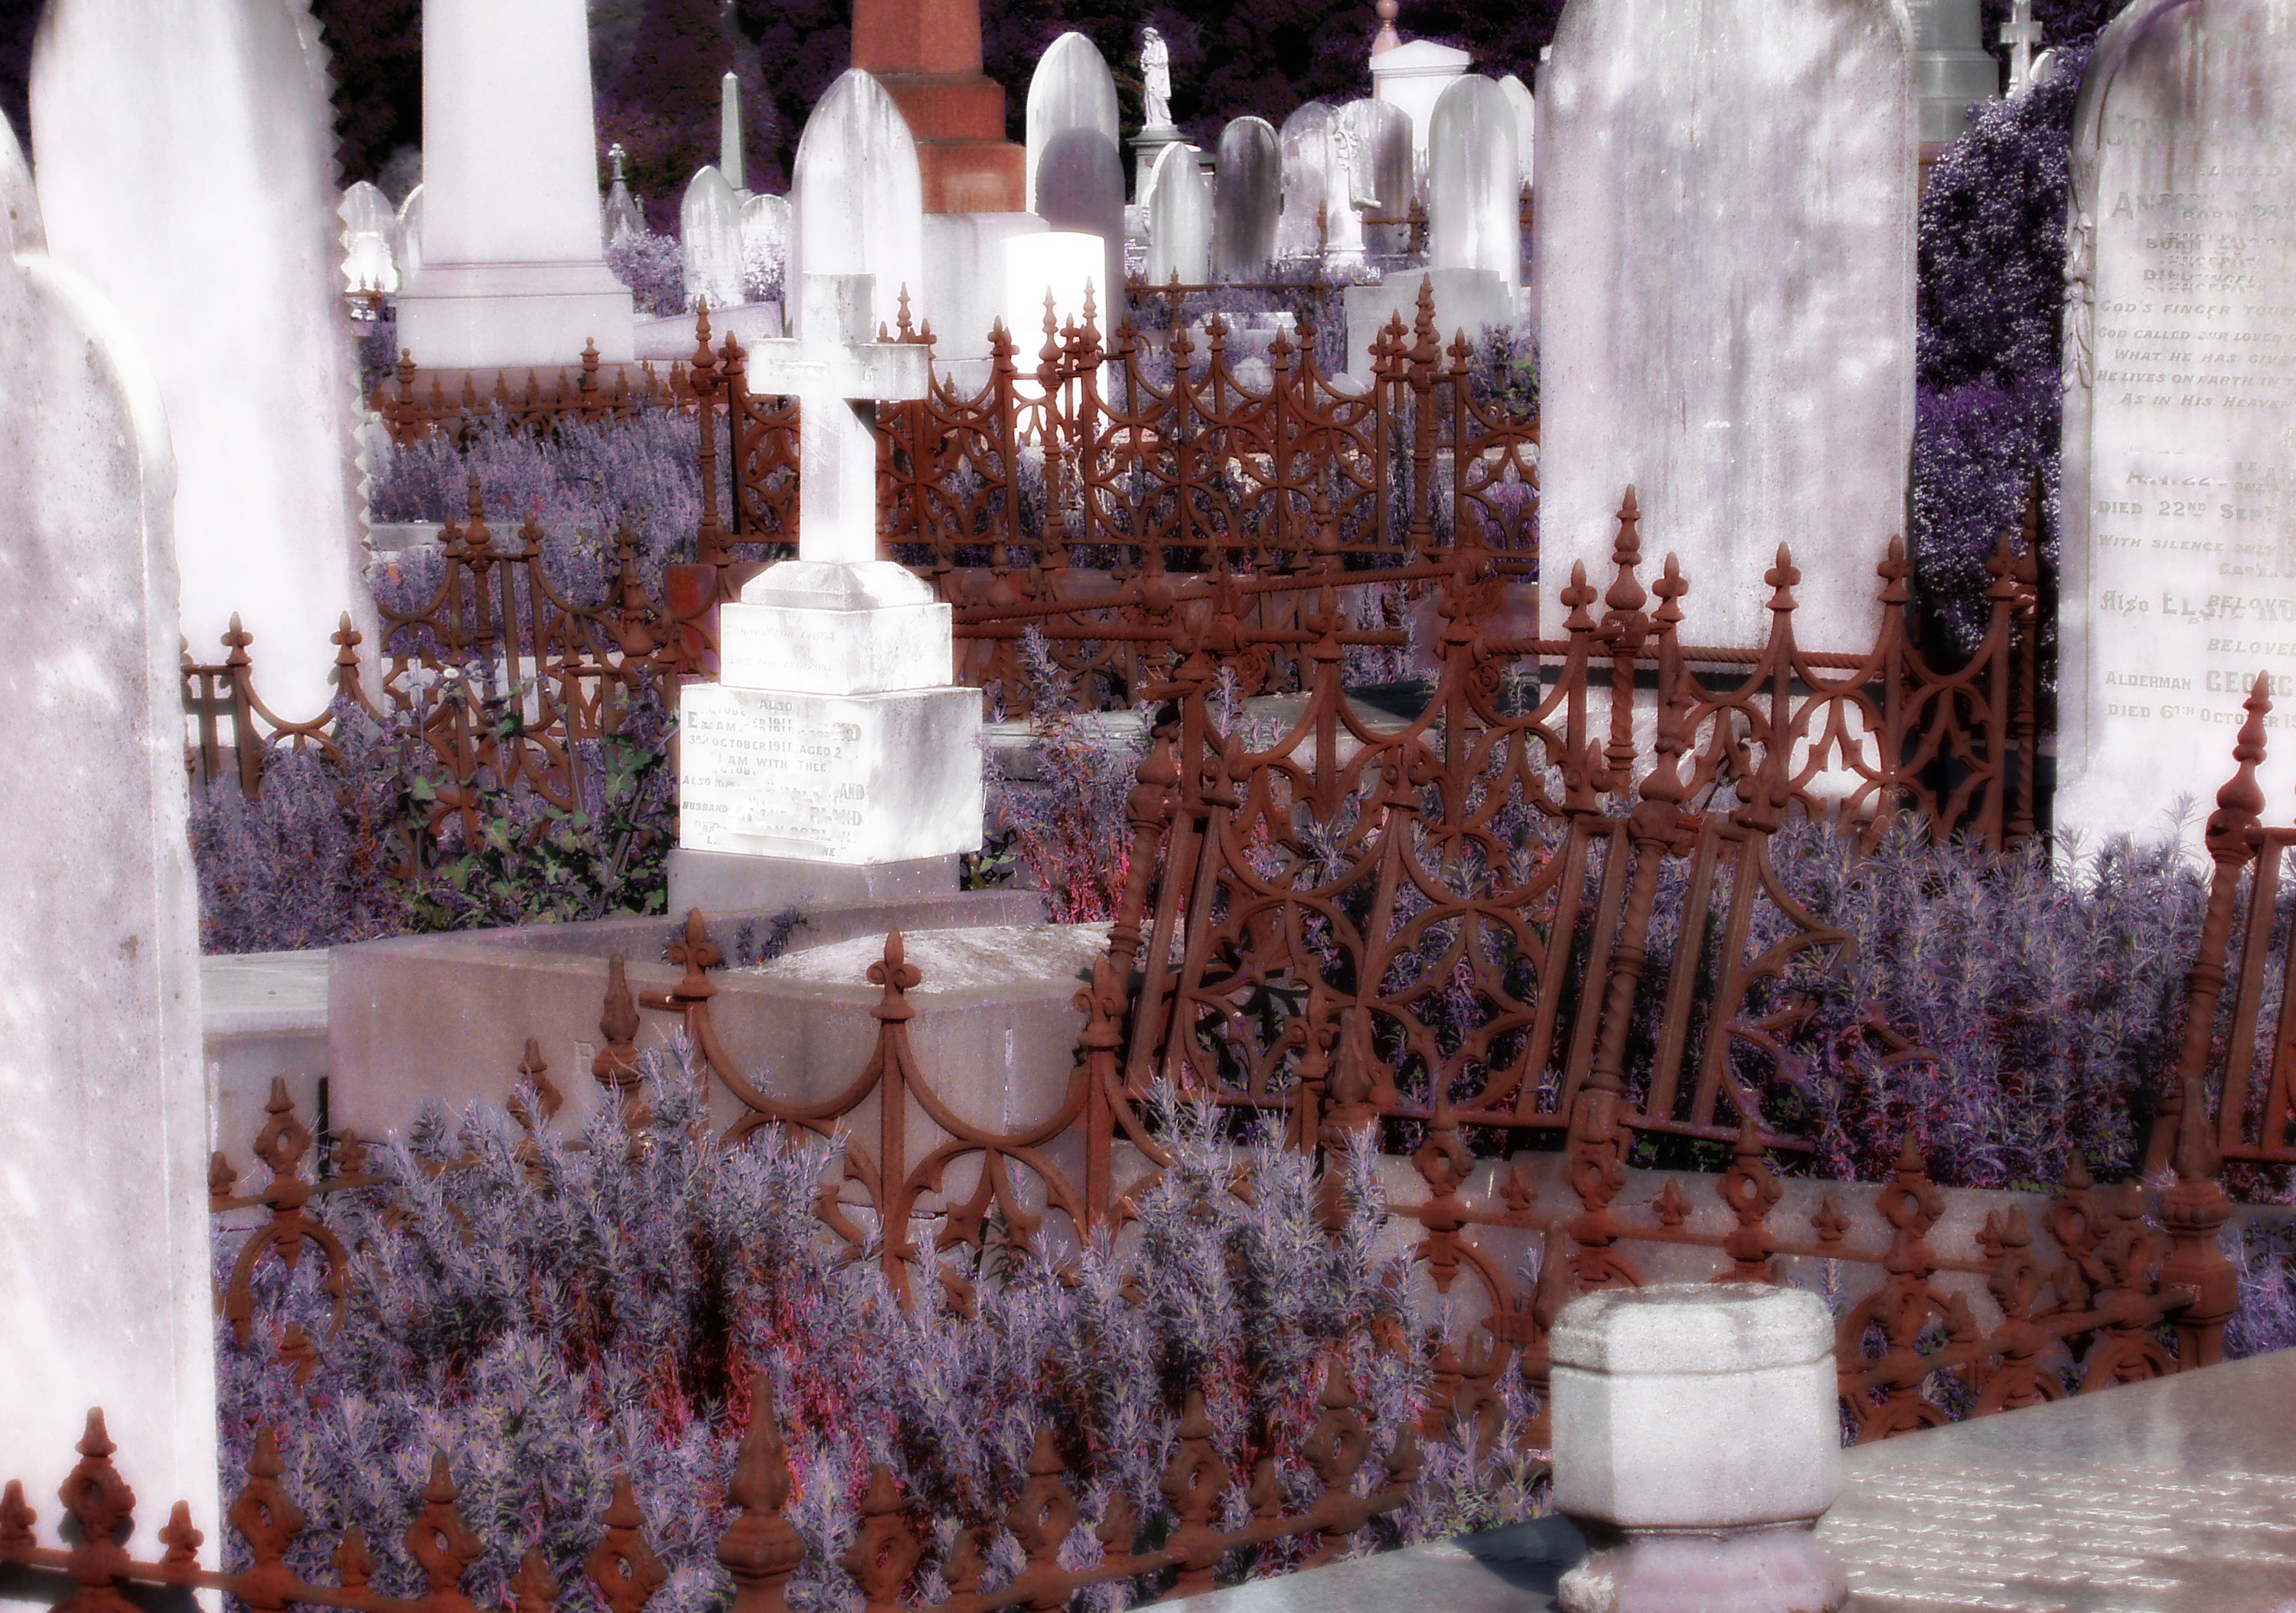 rusty cast iron railings, ethereal misty looking headstones and graves